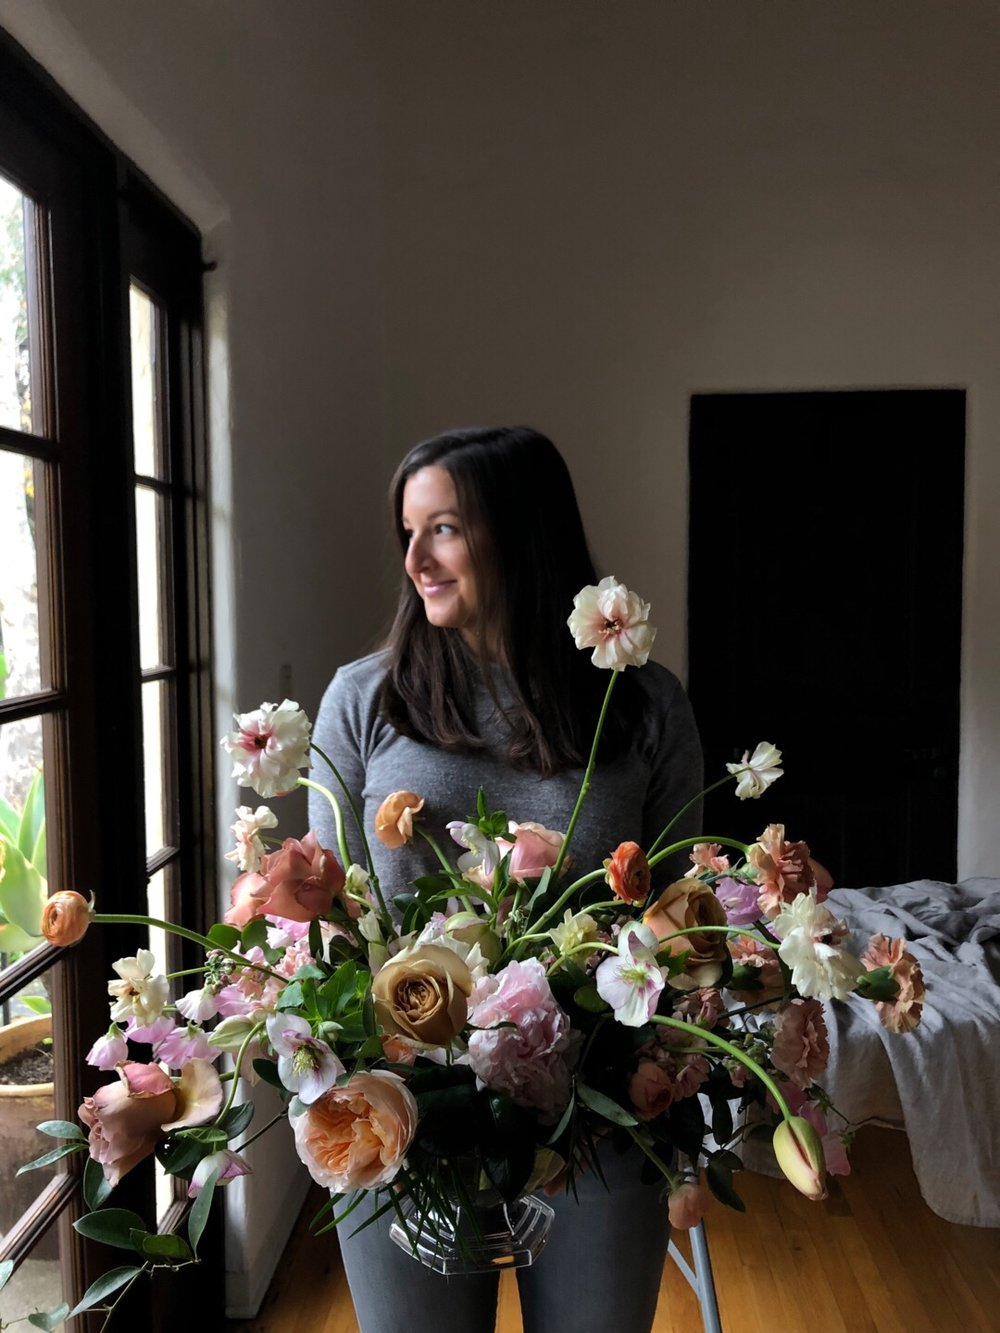 Jessica Zimmerman | Business Education Blog | My Florabundance Full-Circle Moment